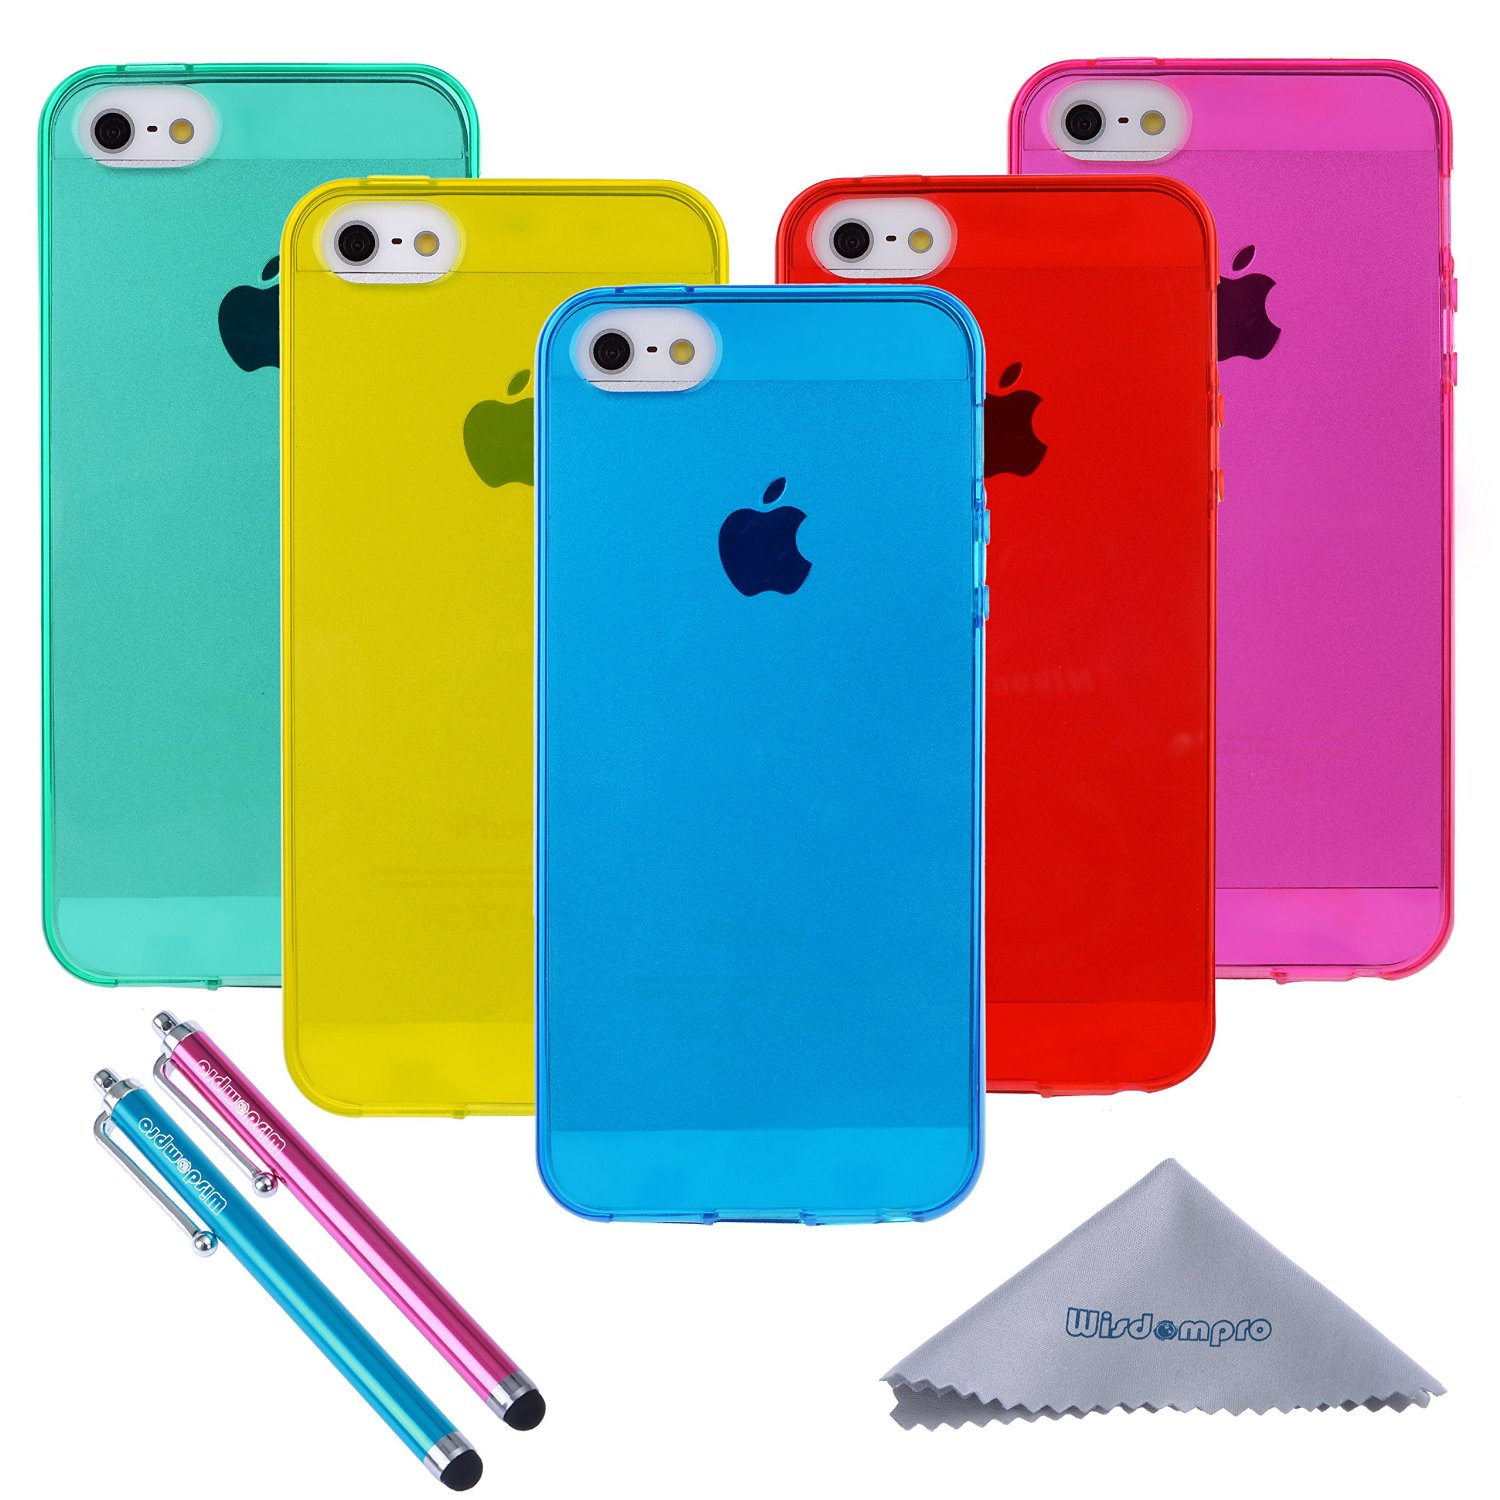 iPhone 5s Case, Wisdompro 5 Pack Bundle of Clear Jelly Colorful Soft TPU GEL Protective Case Cover for Apple iPhone 5, iPhone 5s & iPhone SE (Blue, Aqua Blue, Hot Pink, Yellow, Red)